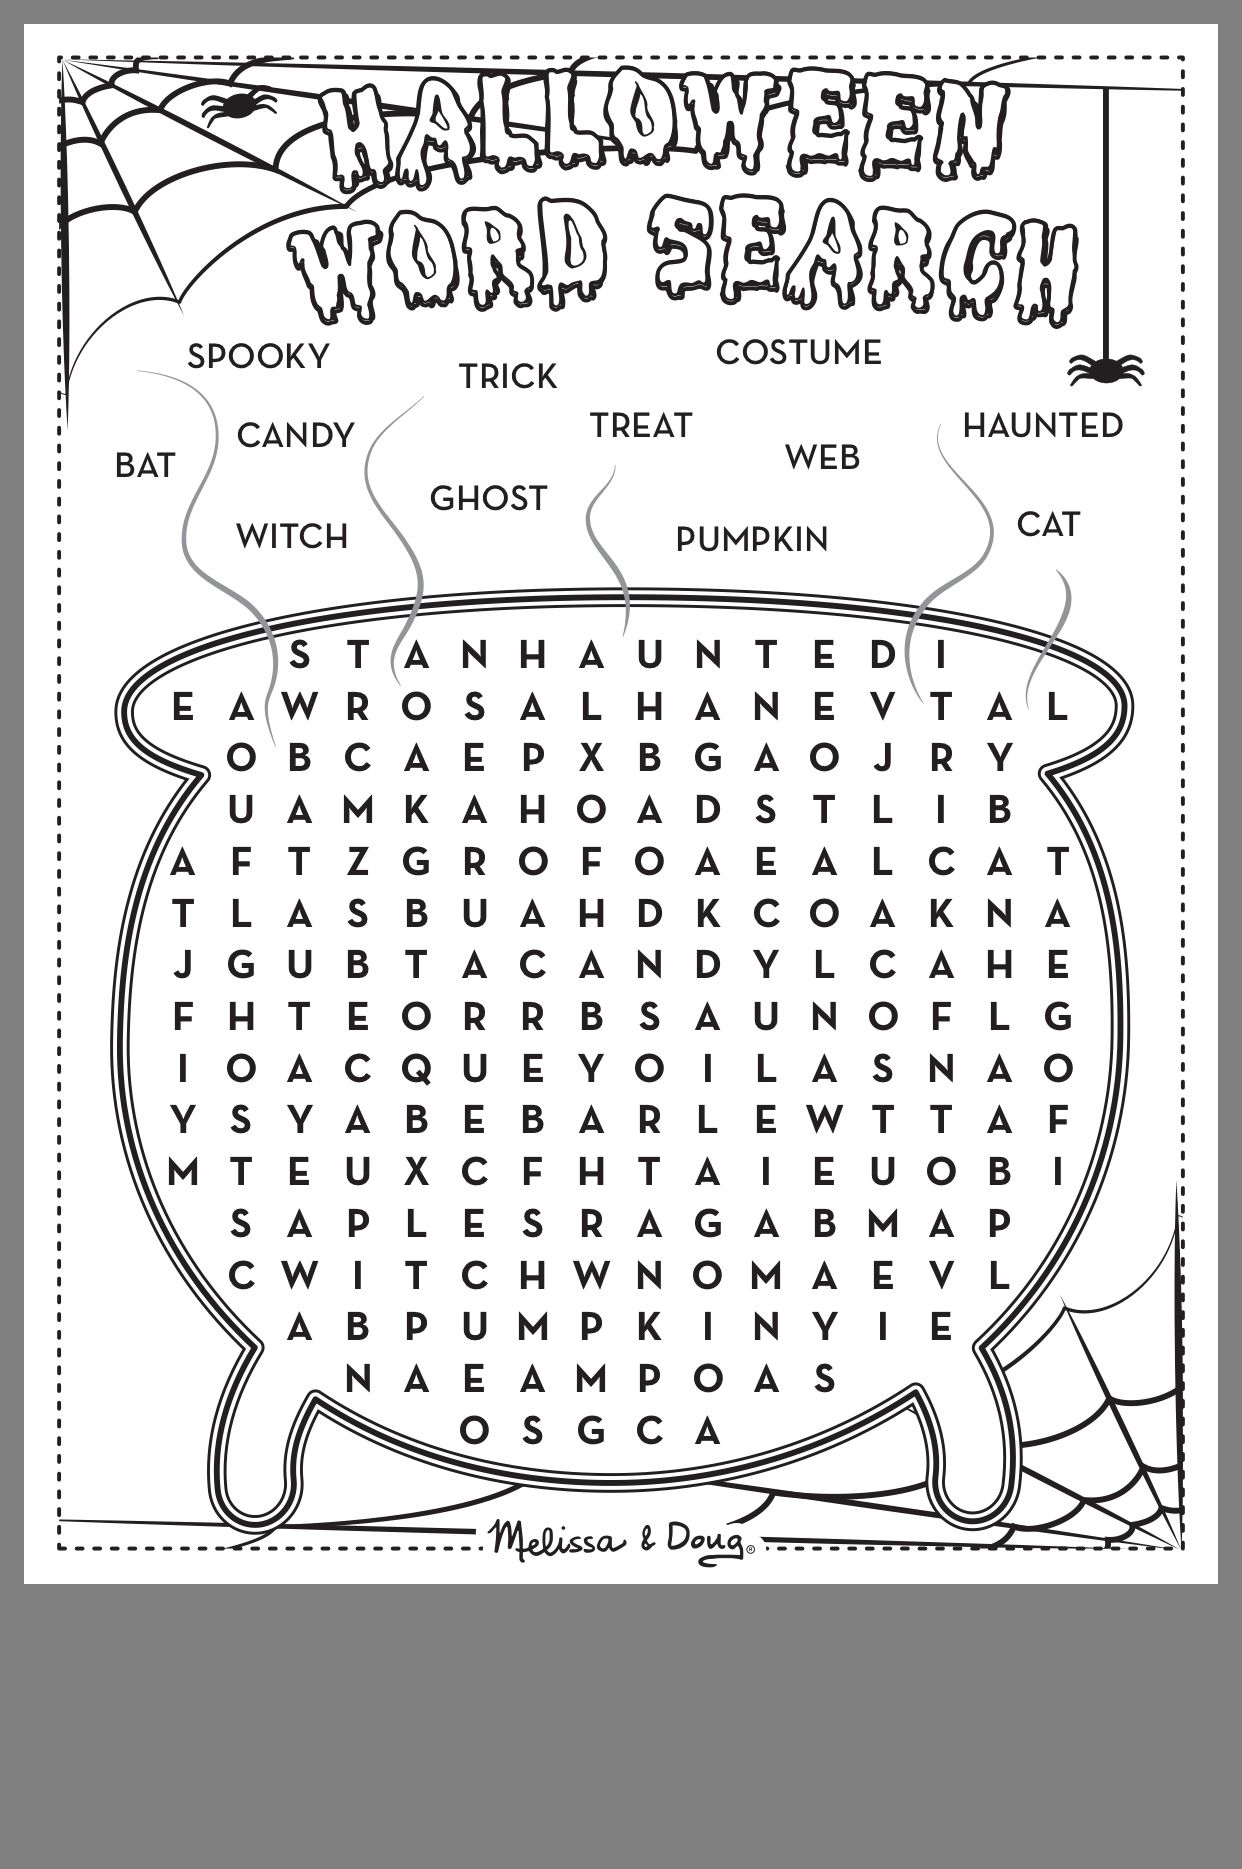 Pin By Leanna Steffen On Education Halloween Worksheets Halloween Lesson Halloween Words [ 1869 x 1242 Pixel ]